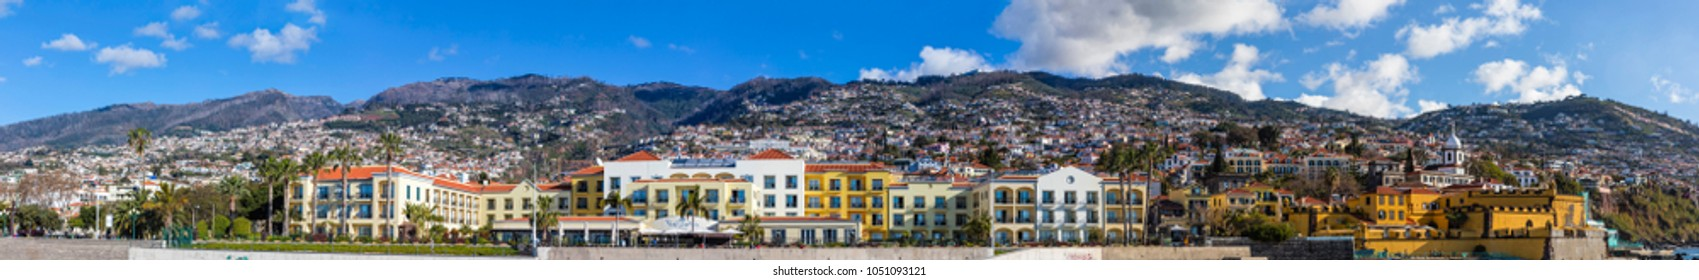 FUNCHAL, MADEIRA - FEBRUARY 14, 2018: Panoramic seafront view of Funchal, Madeira